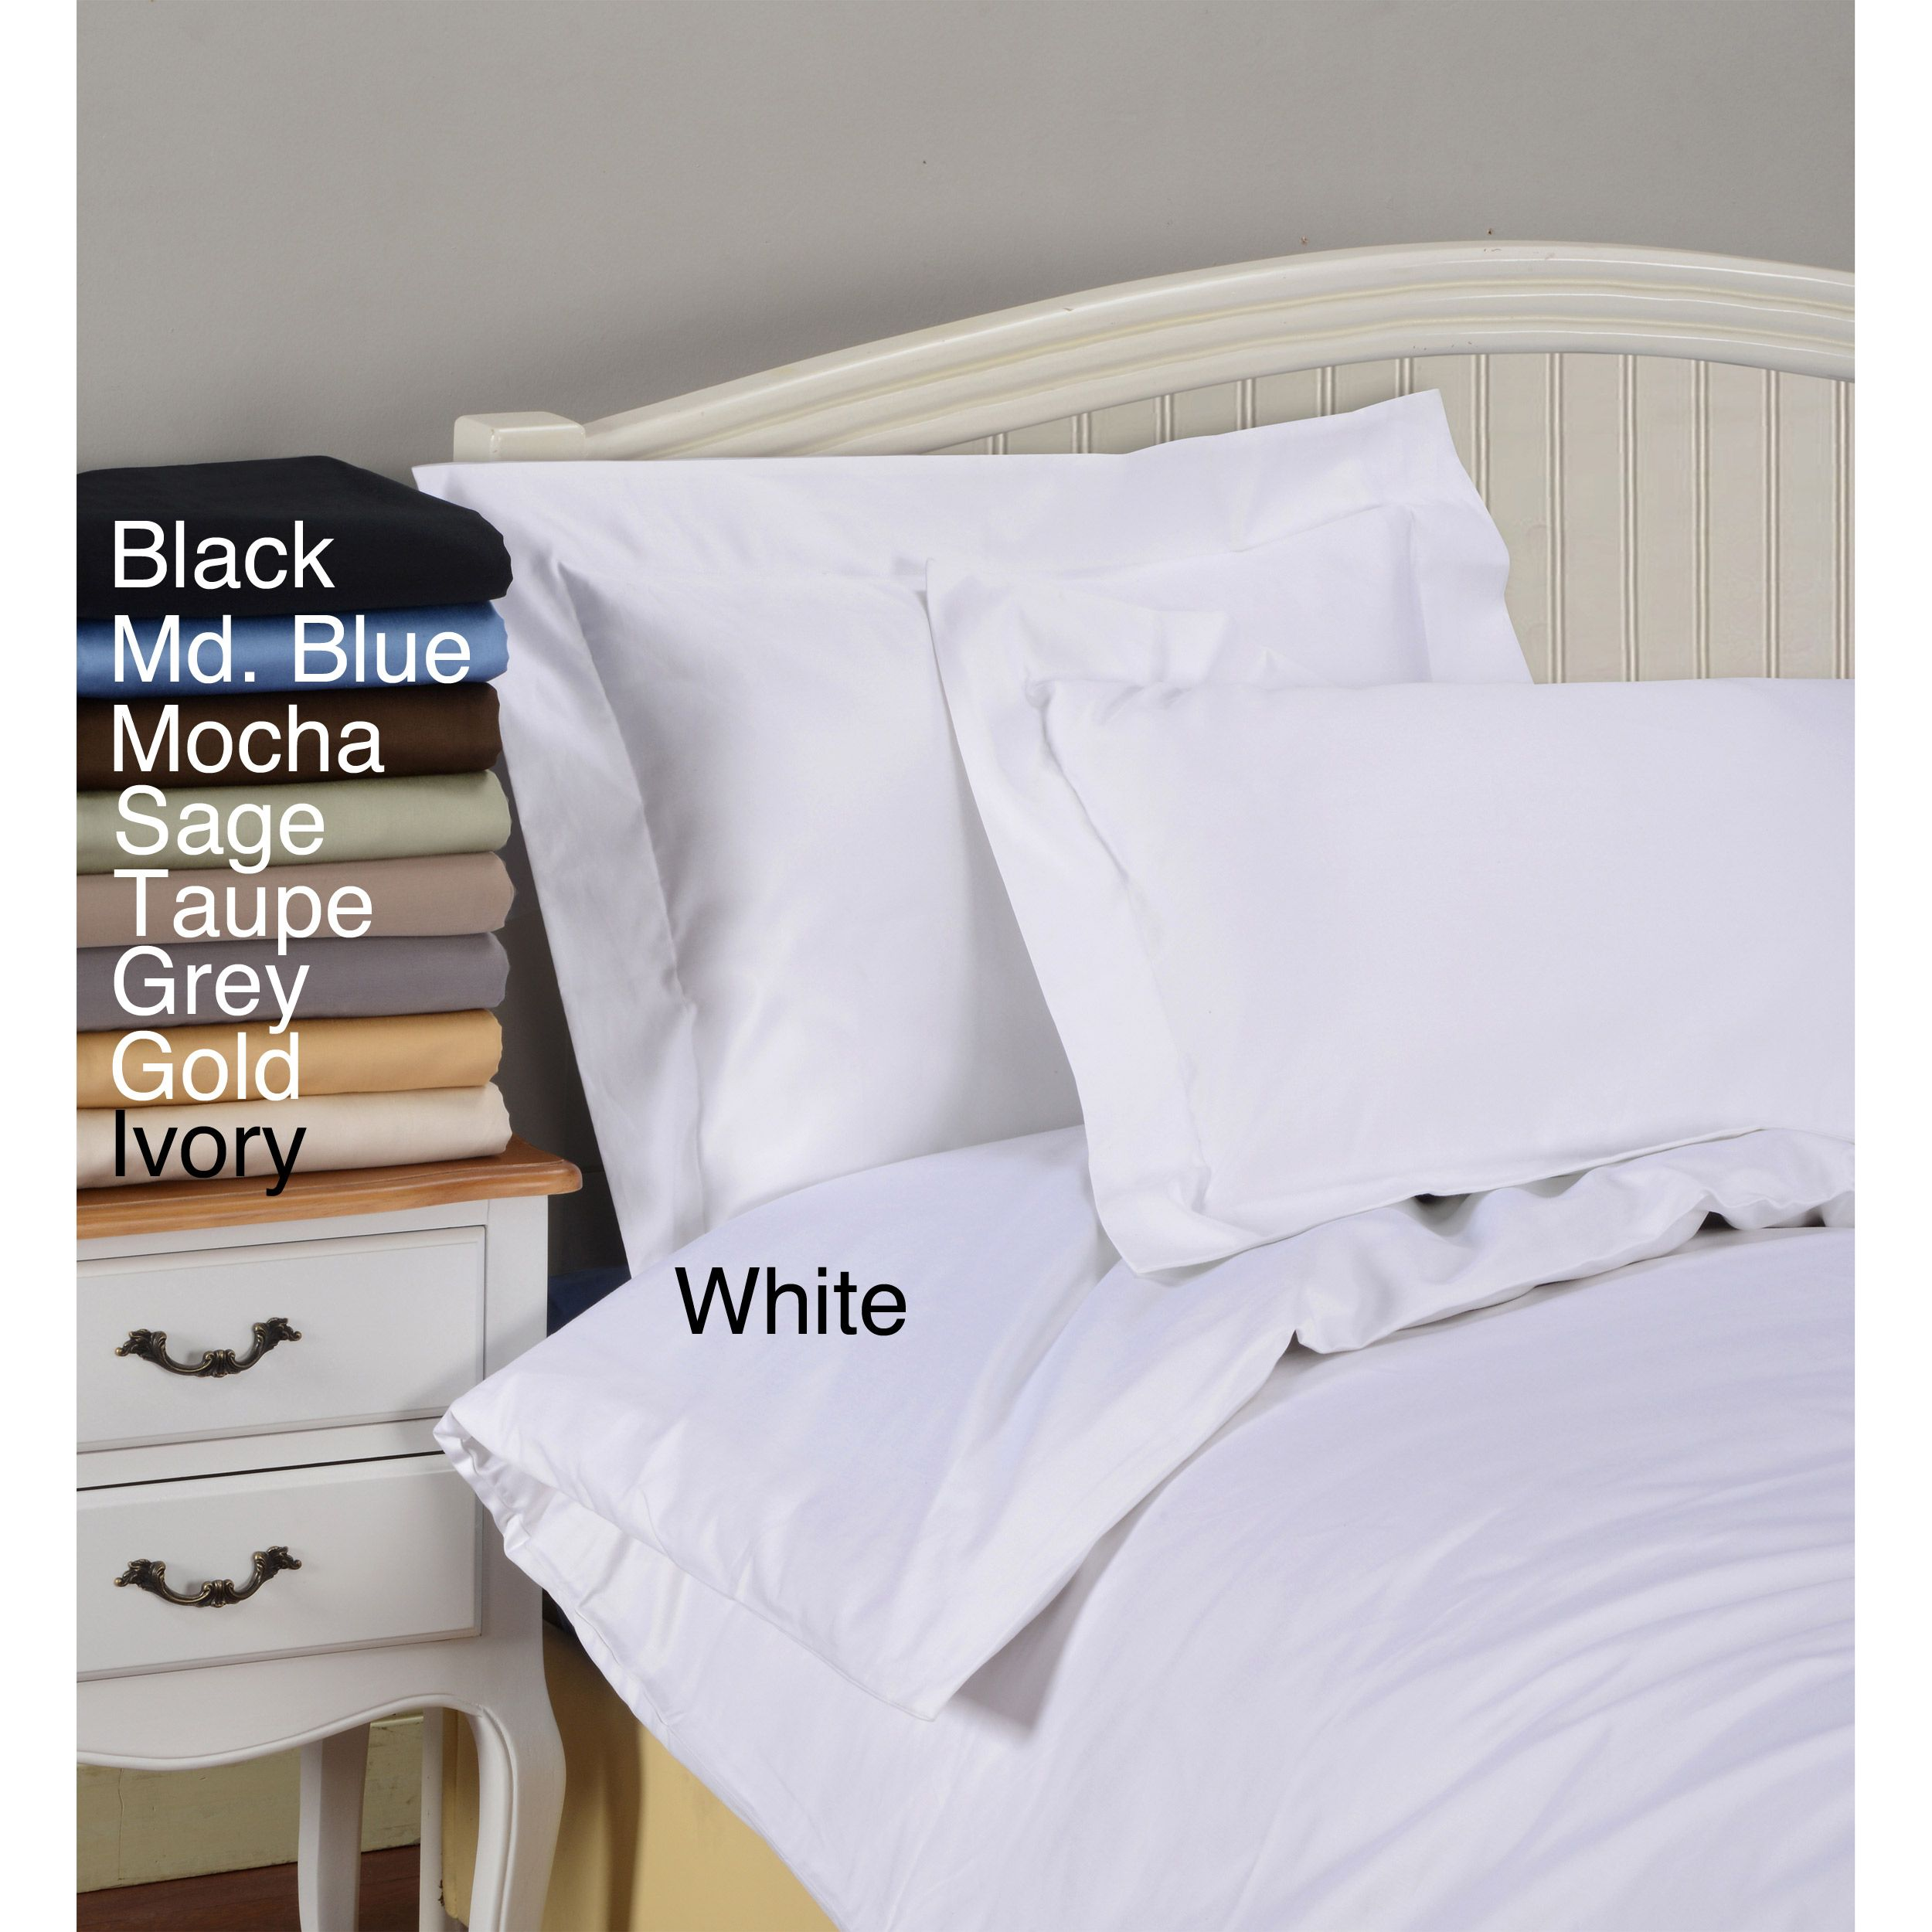 The Duvet Set Is Made Of 100 Percent Egyptian Cotton And Features A Thread Count Each Bedding Comes